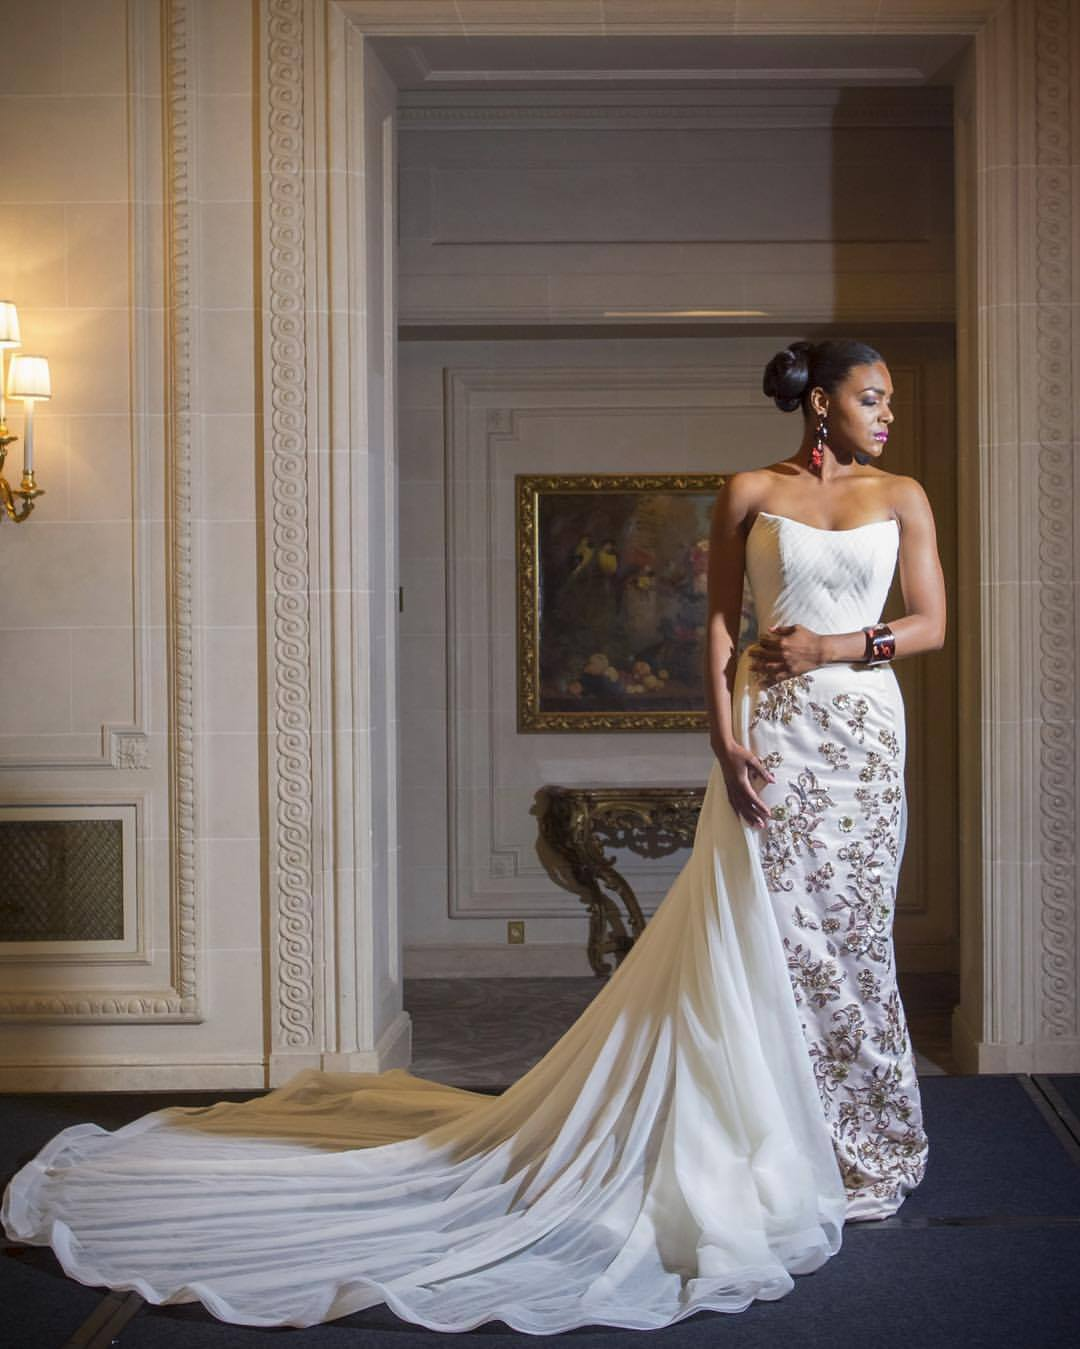 Serena Williams' Wedding Dress